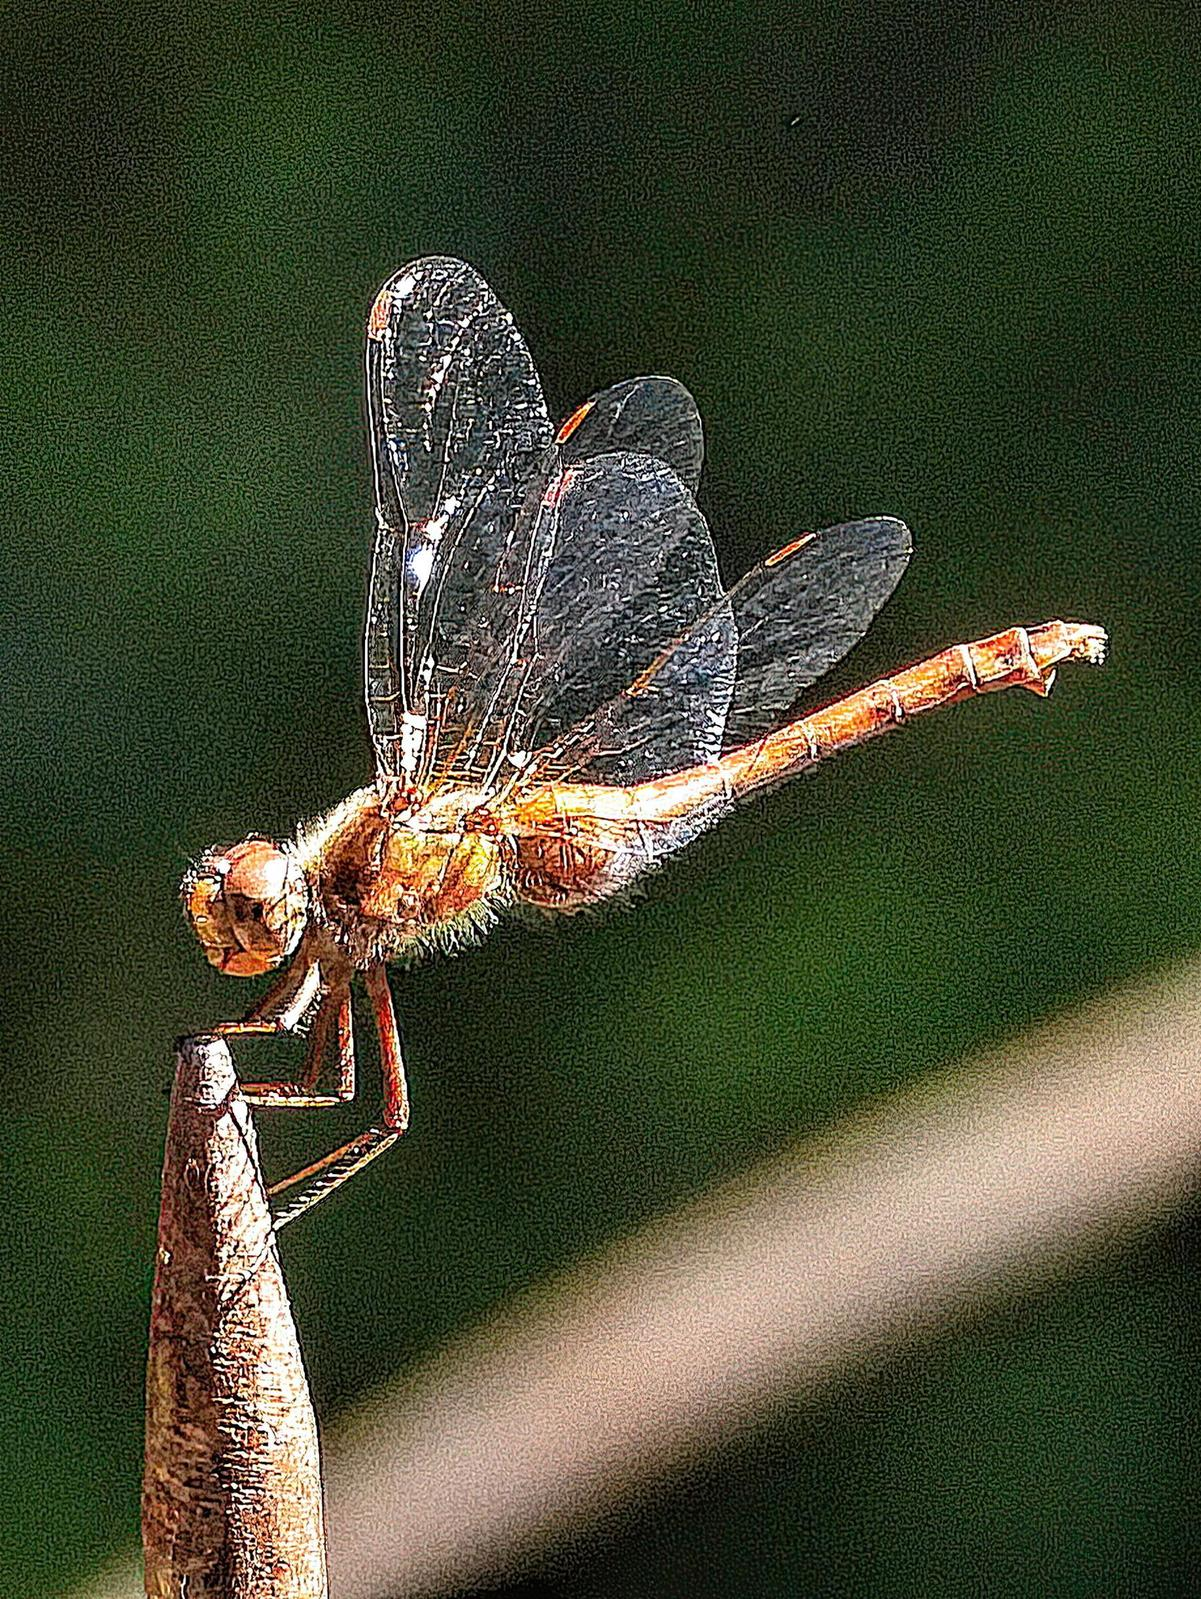 Autumn Meadowhawk Photo by Dan Tallman